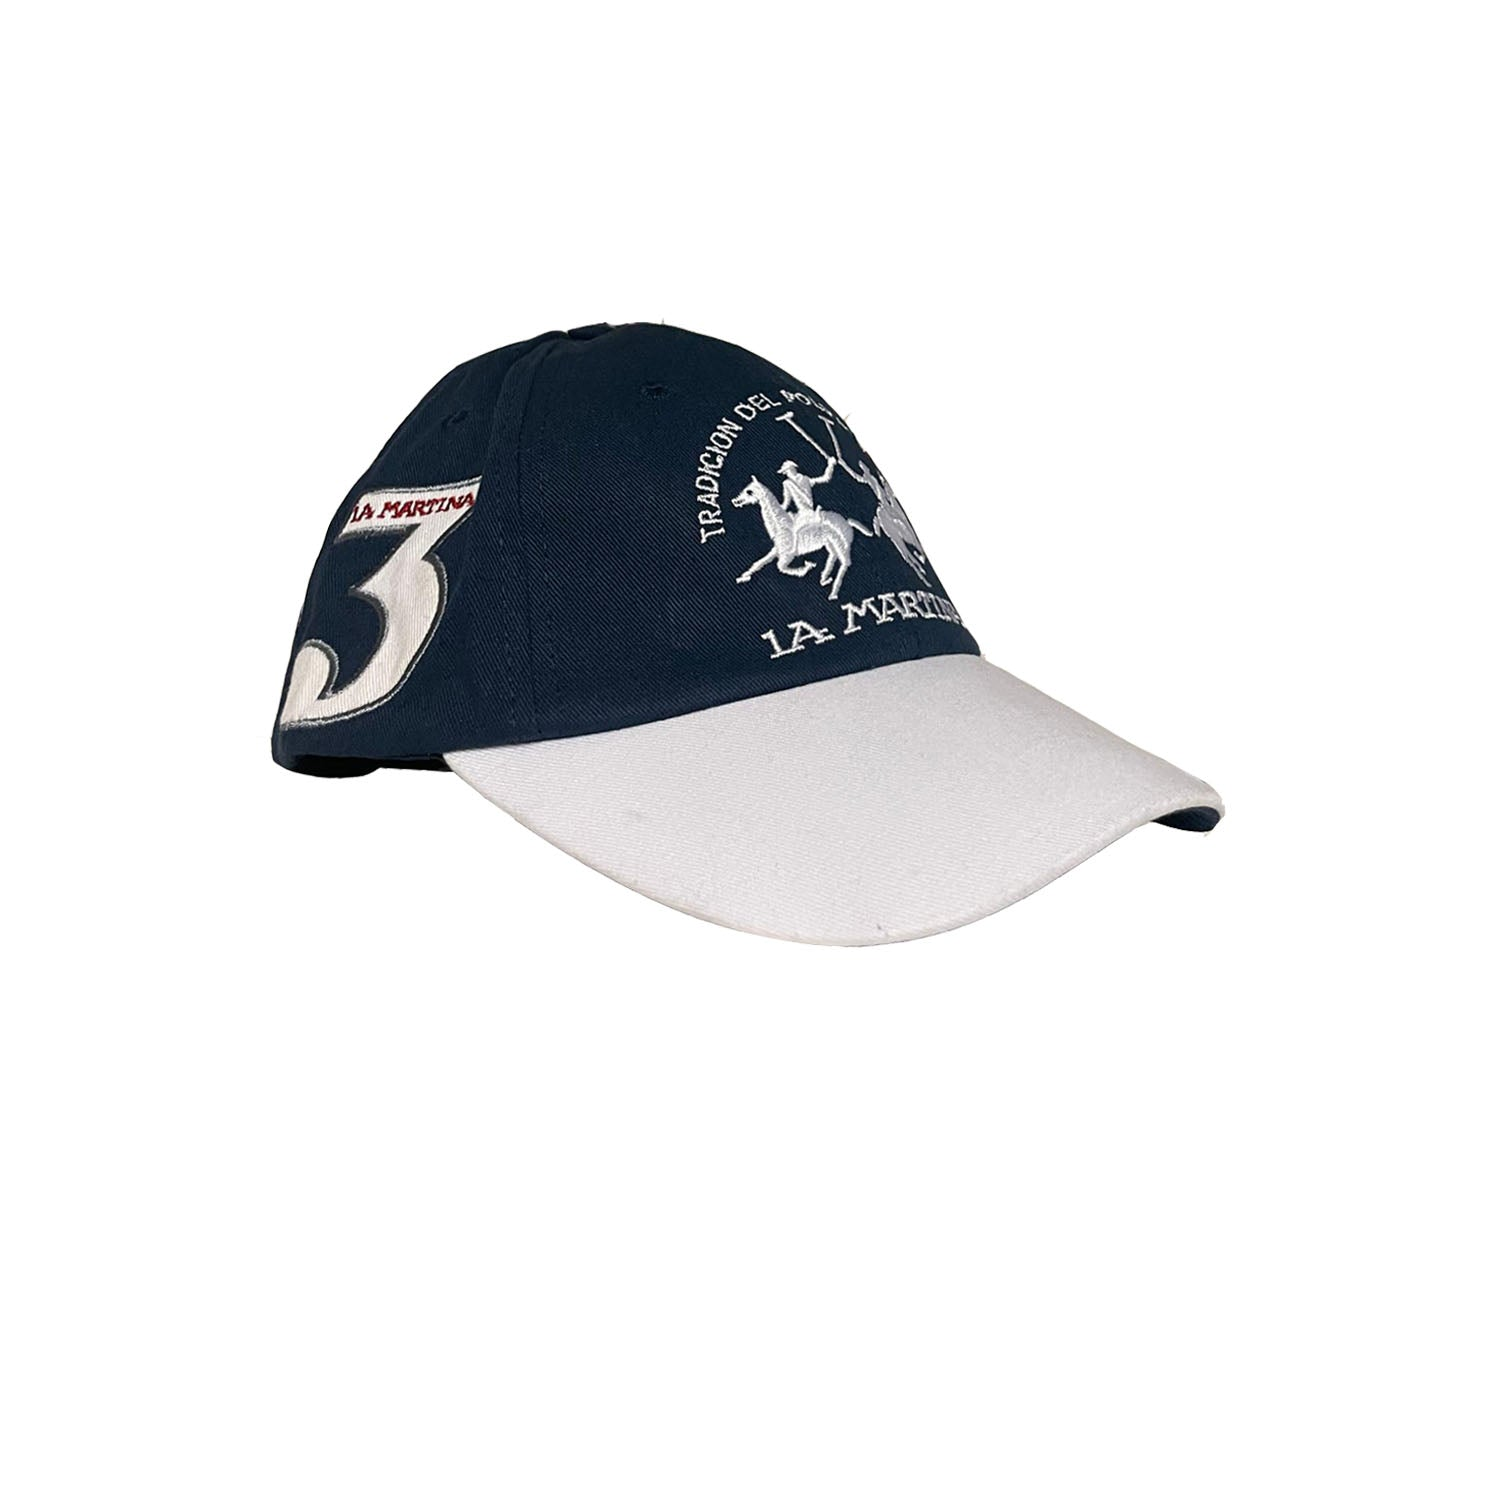 La Martina Embroidered Logo Unisex Twill Cotton Cap